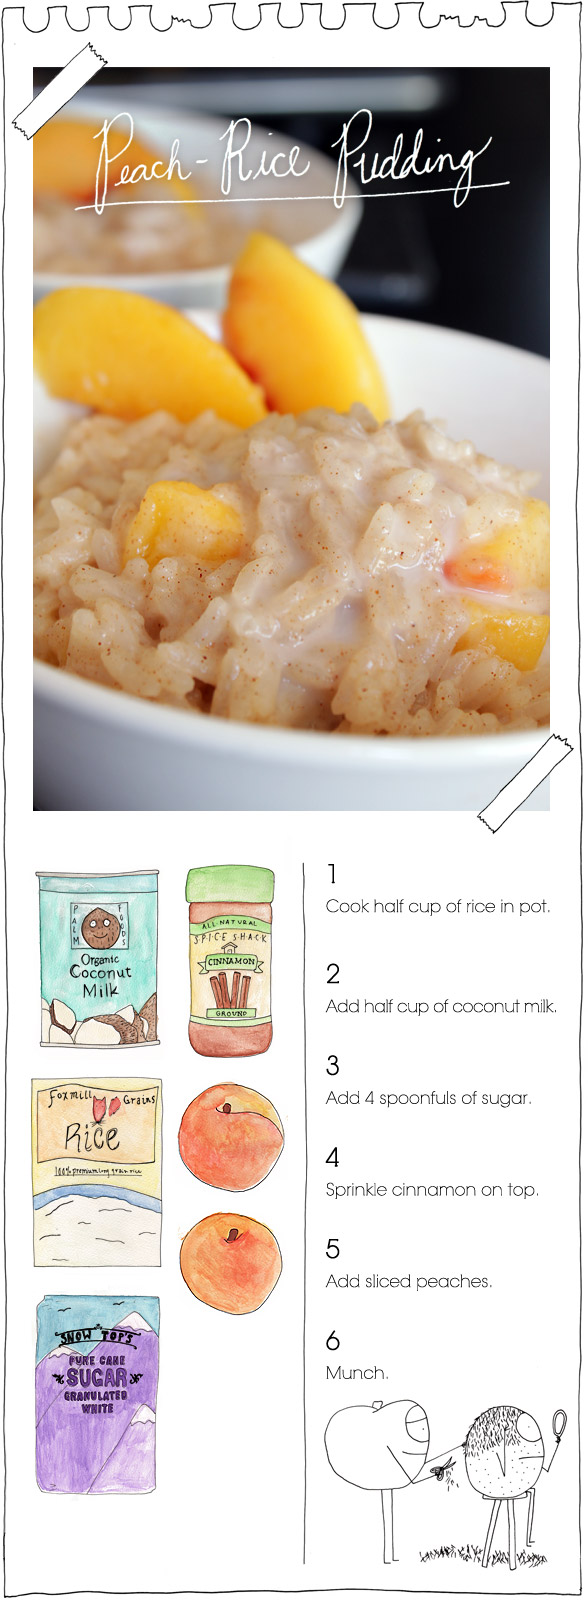 The Vegan Stoner's Peach-Rice Pudding